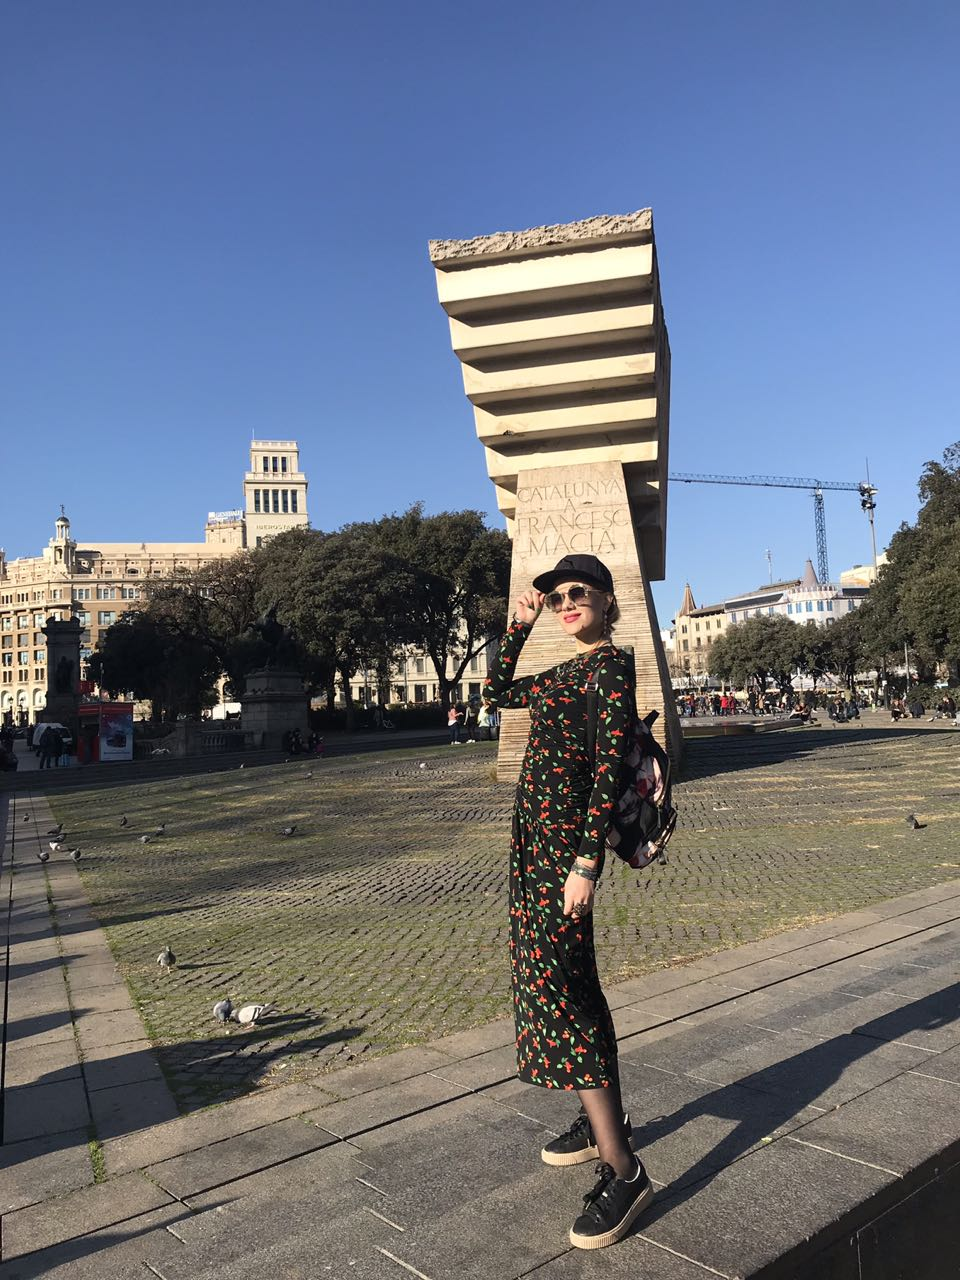 Barcelona I Love You. Part 1